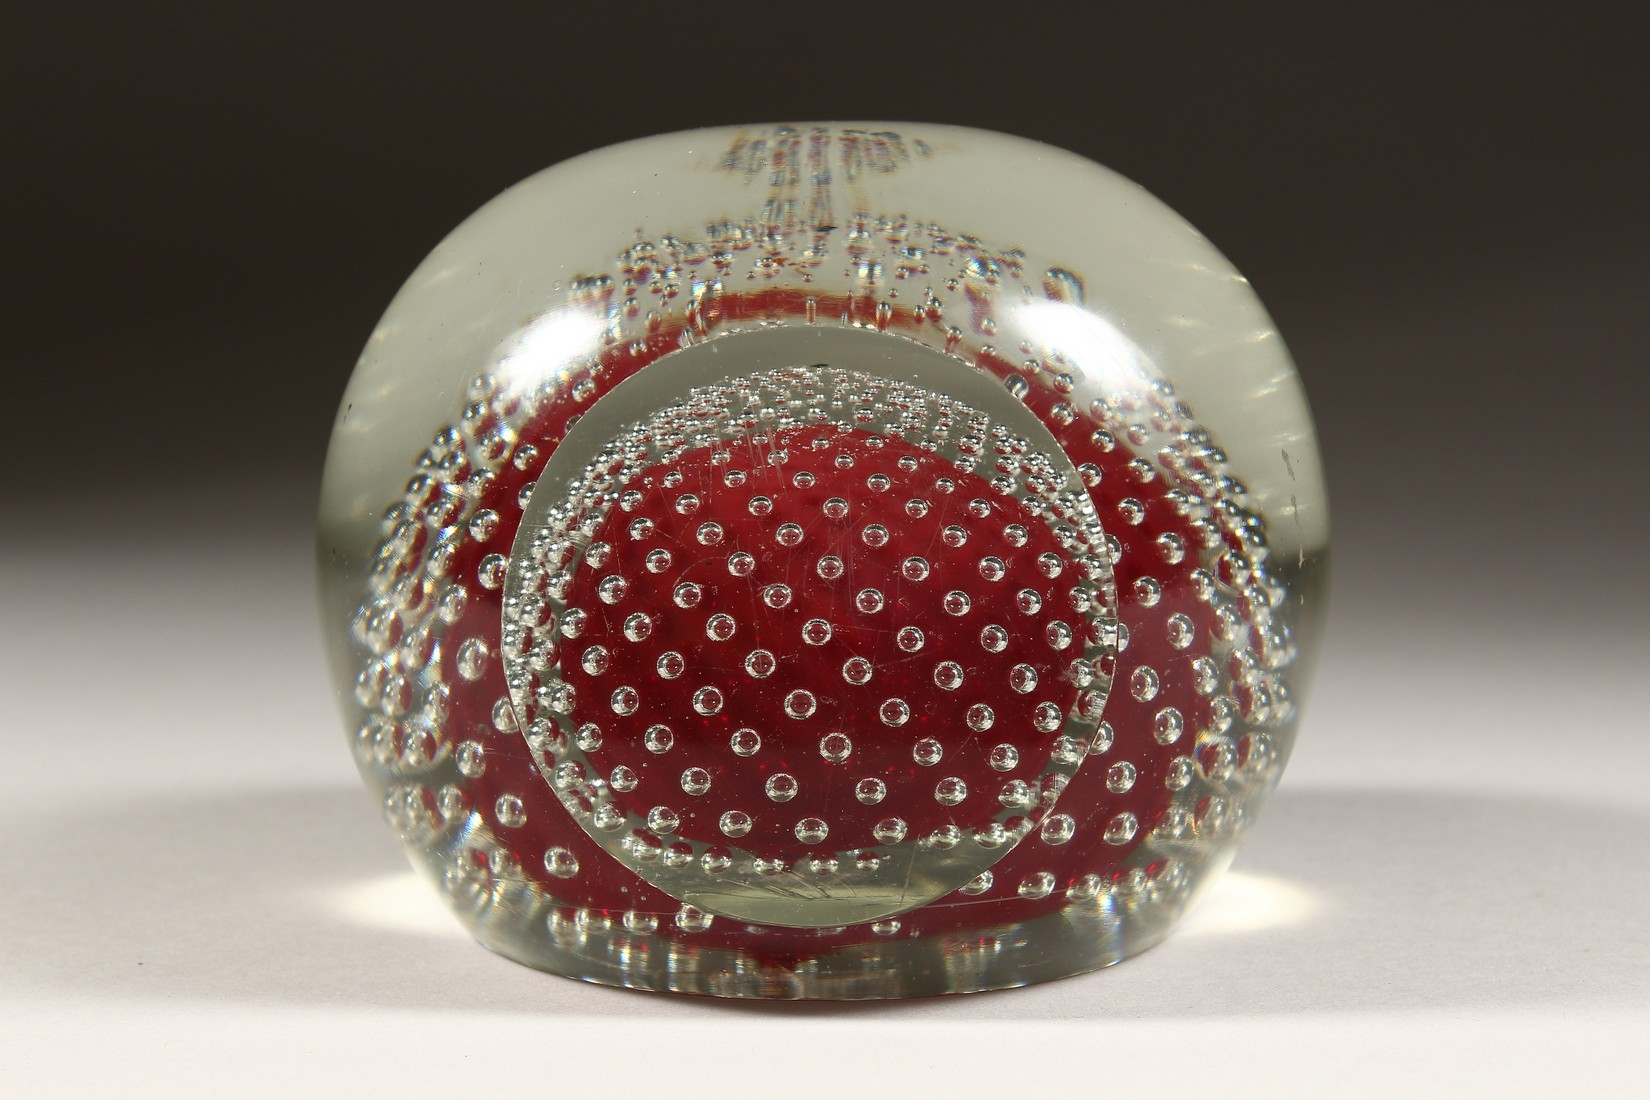 A LARGE GLASS PAPERWEIGHT. - Image 2 of 6